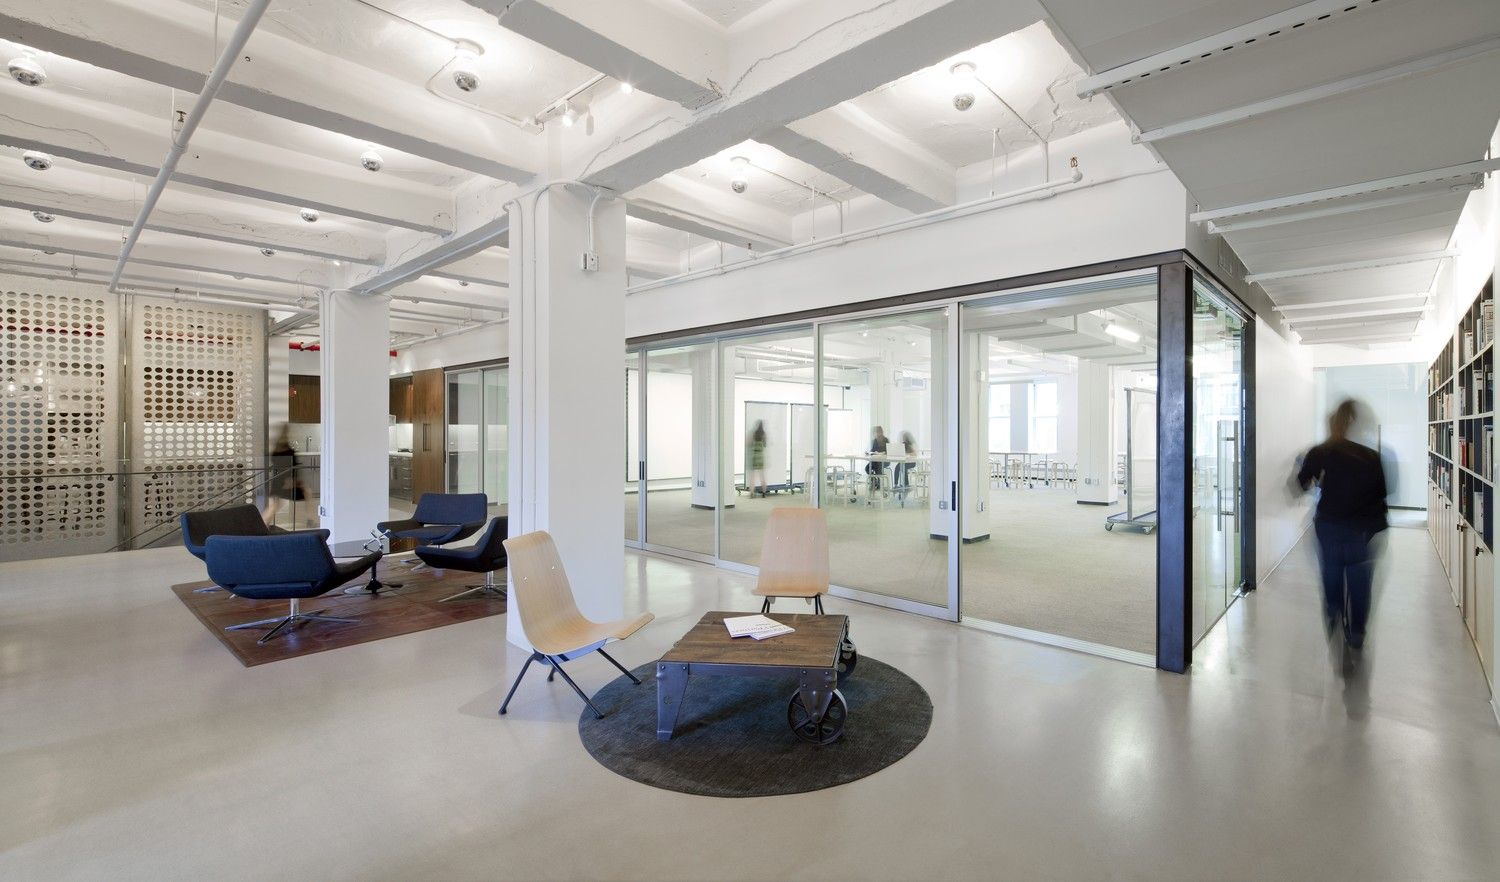 SY Partners - Presentation space with movable Gater Board panels for fluid collaboration